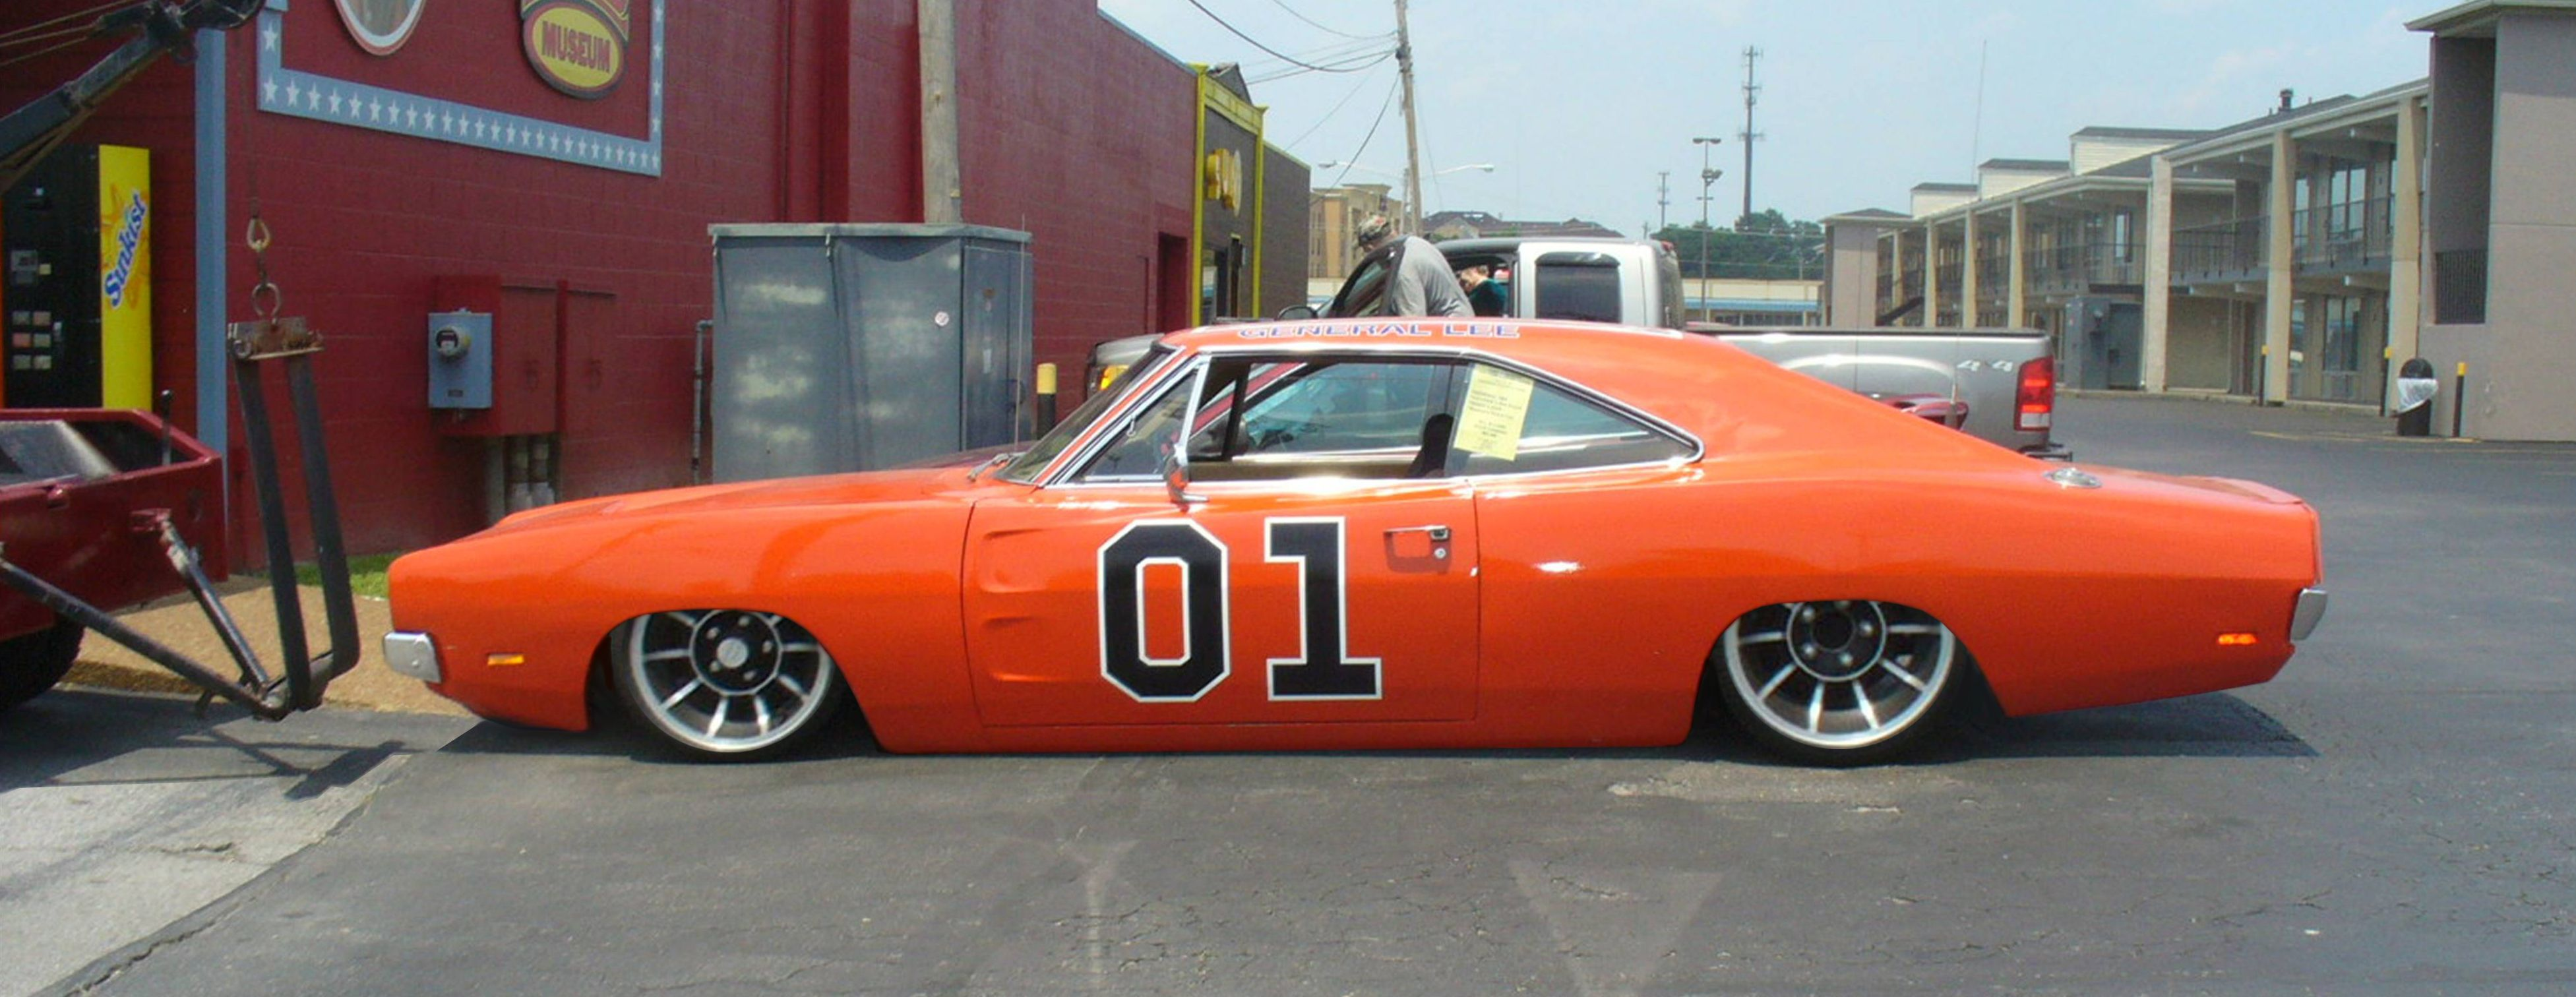 cooters place general lee classic trucks and cars. Black Bedroom Furniture Sets. Home Design Ideas